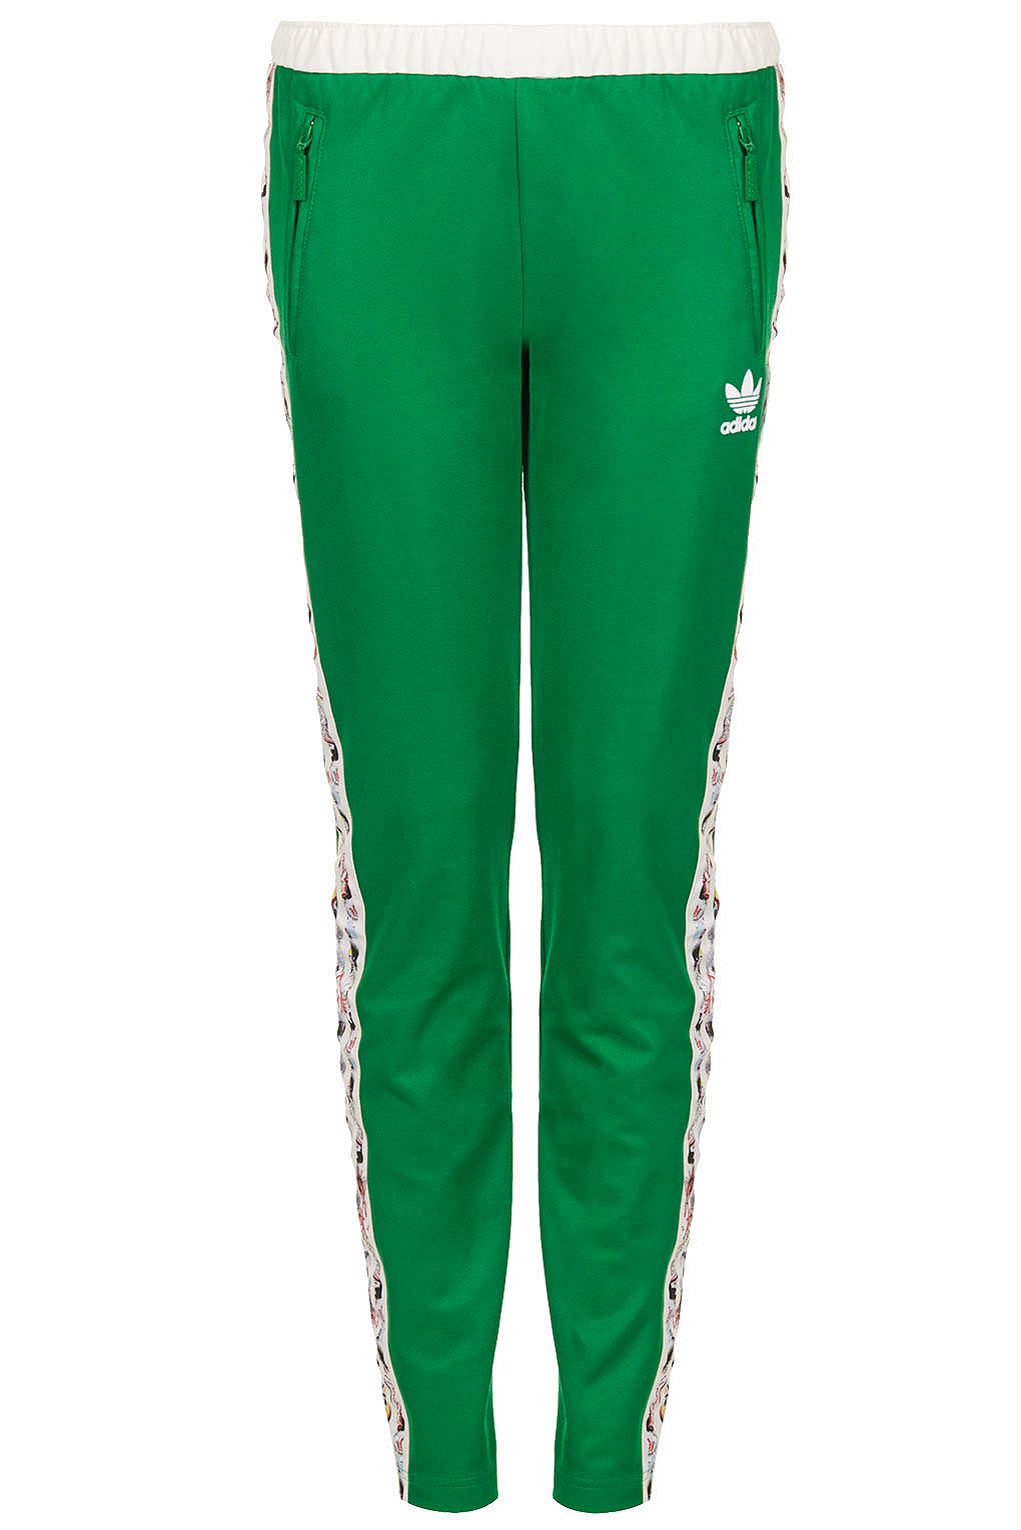 Lyst - TOPSHOP Tracksuit Bottoms By X Adidas Originals in Green ea37df7a2f